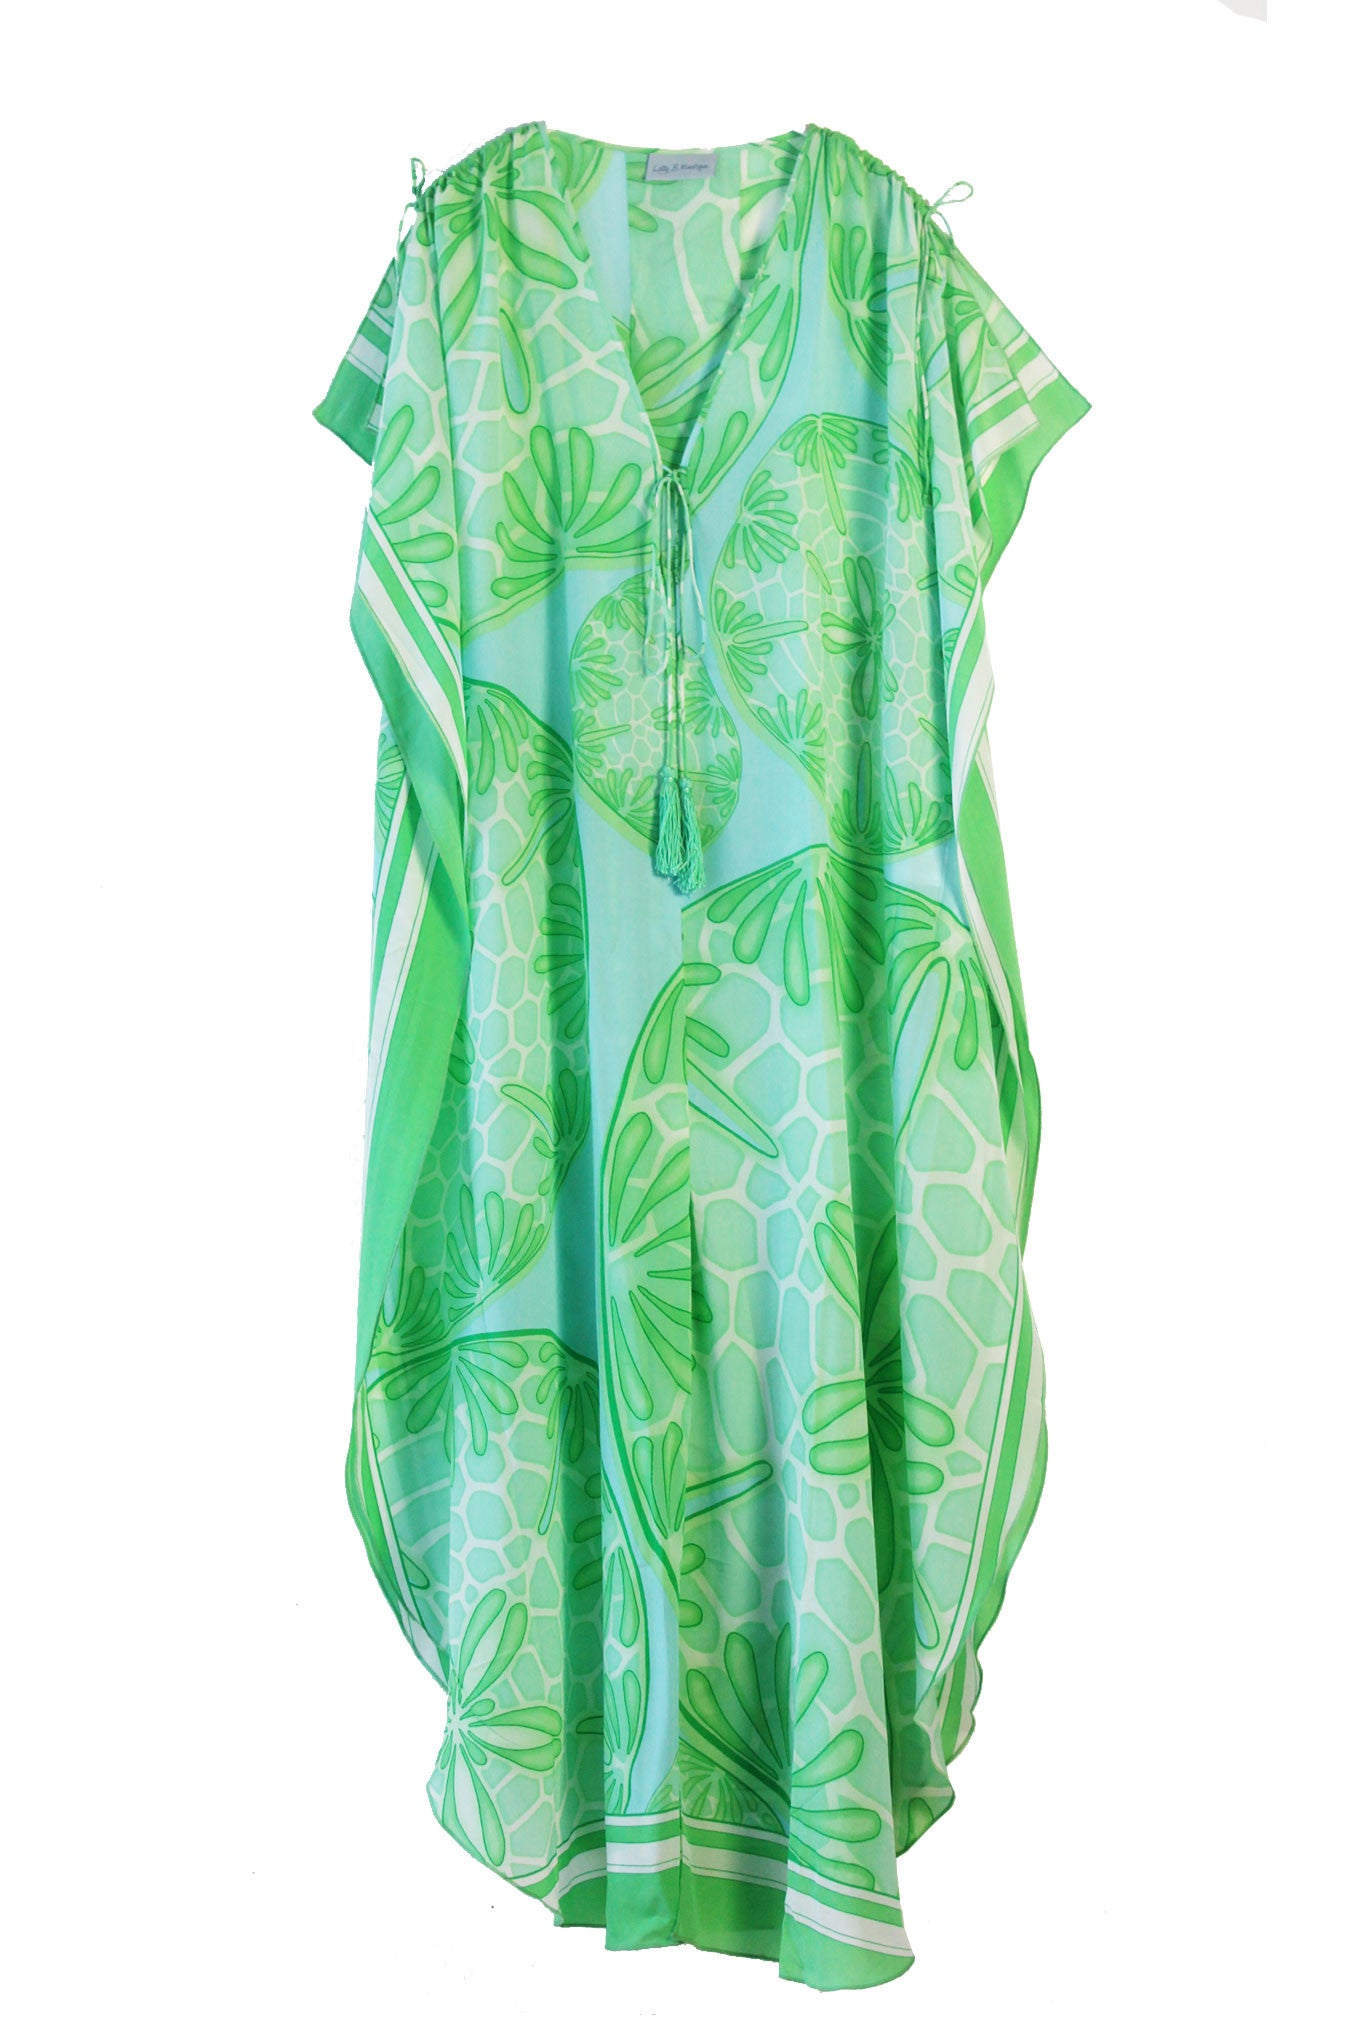 Lotty B Long Kaftan in Silk Crepe-de-Chine (Sand Dollar Green)